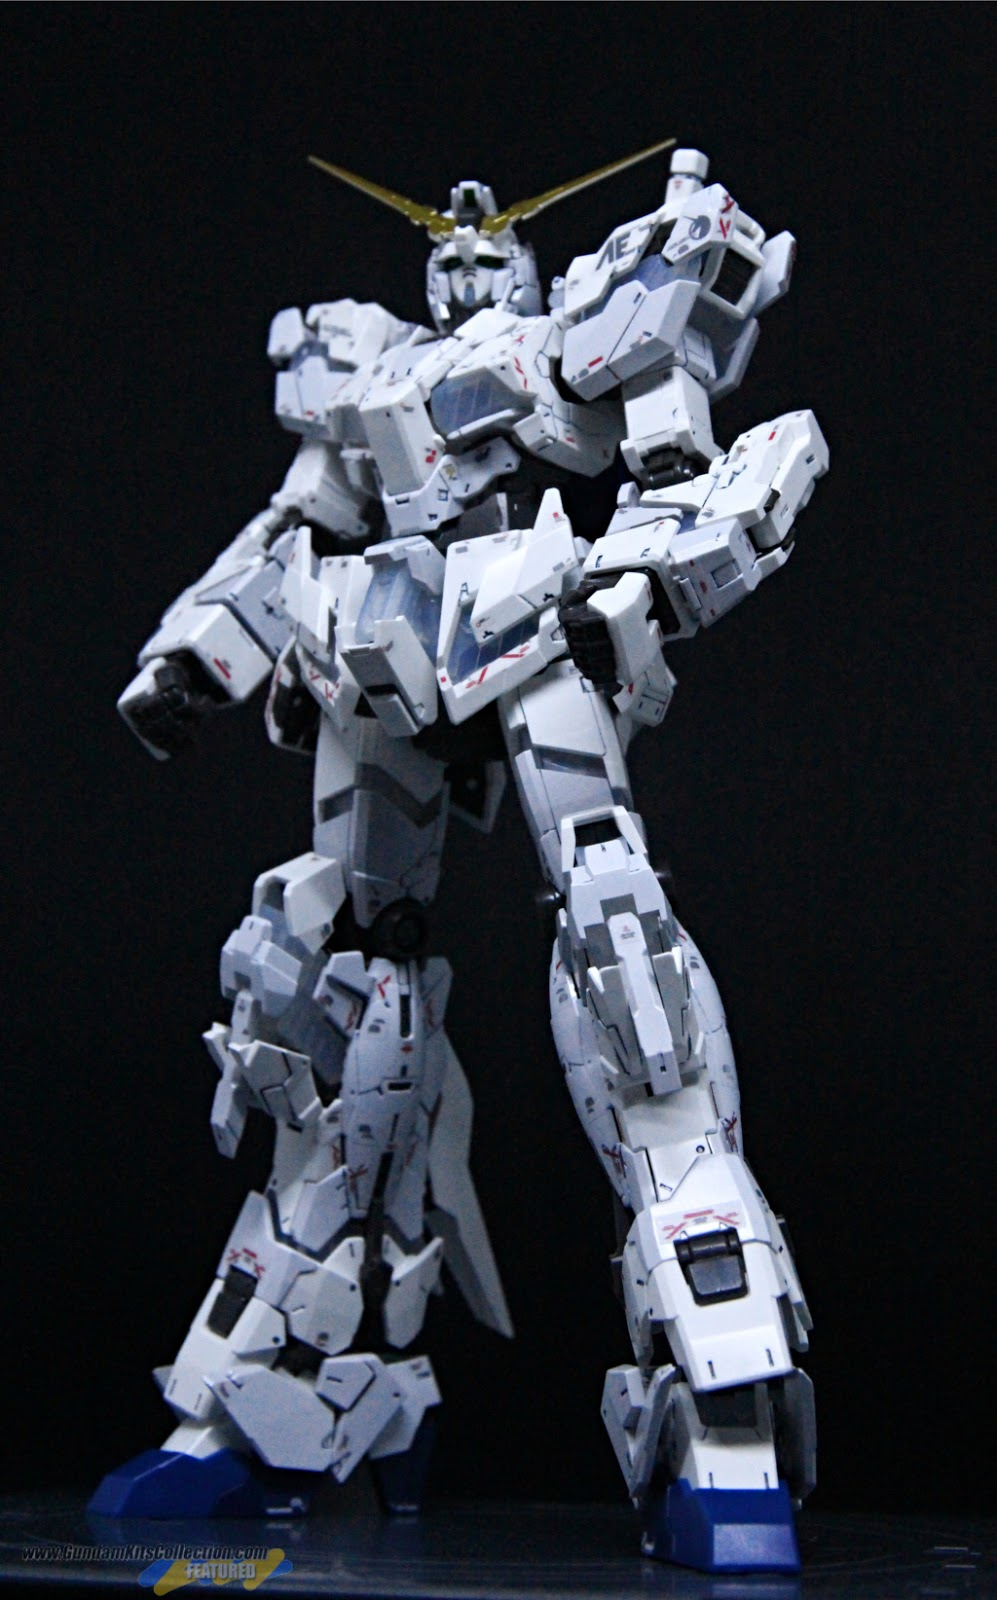 Painted Build: RG 1/144 Unicorn Gundam [Destroy Mode] Lighting Model ver. TWC - Gundam Kits Collection News and Reviews